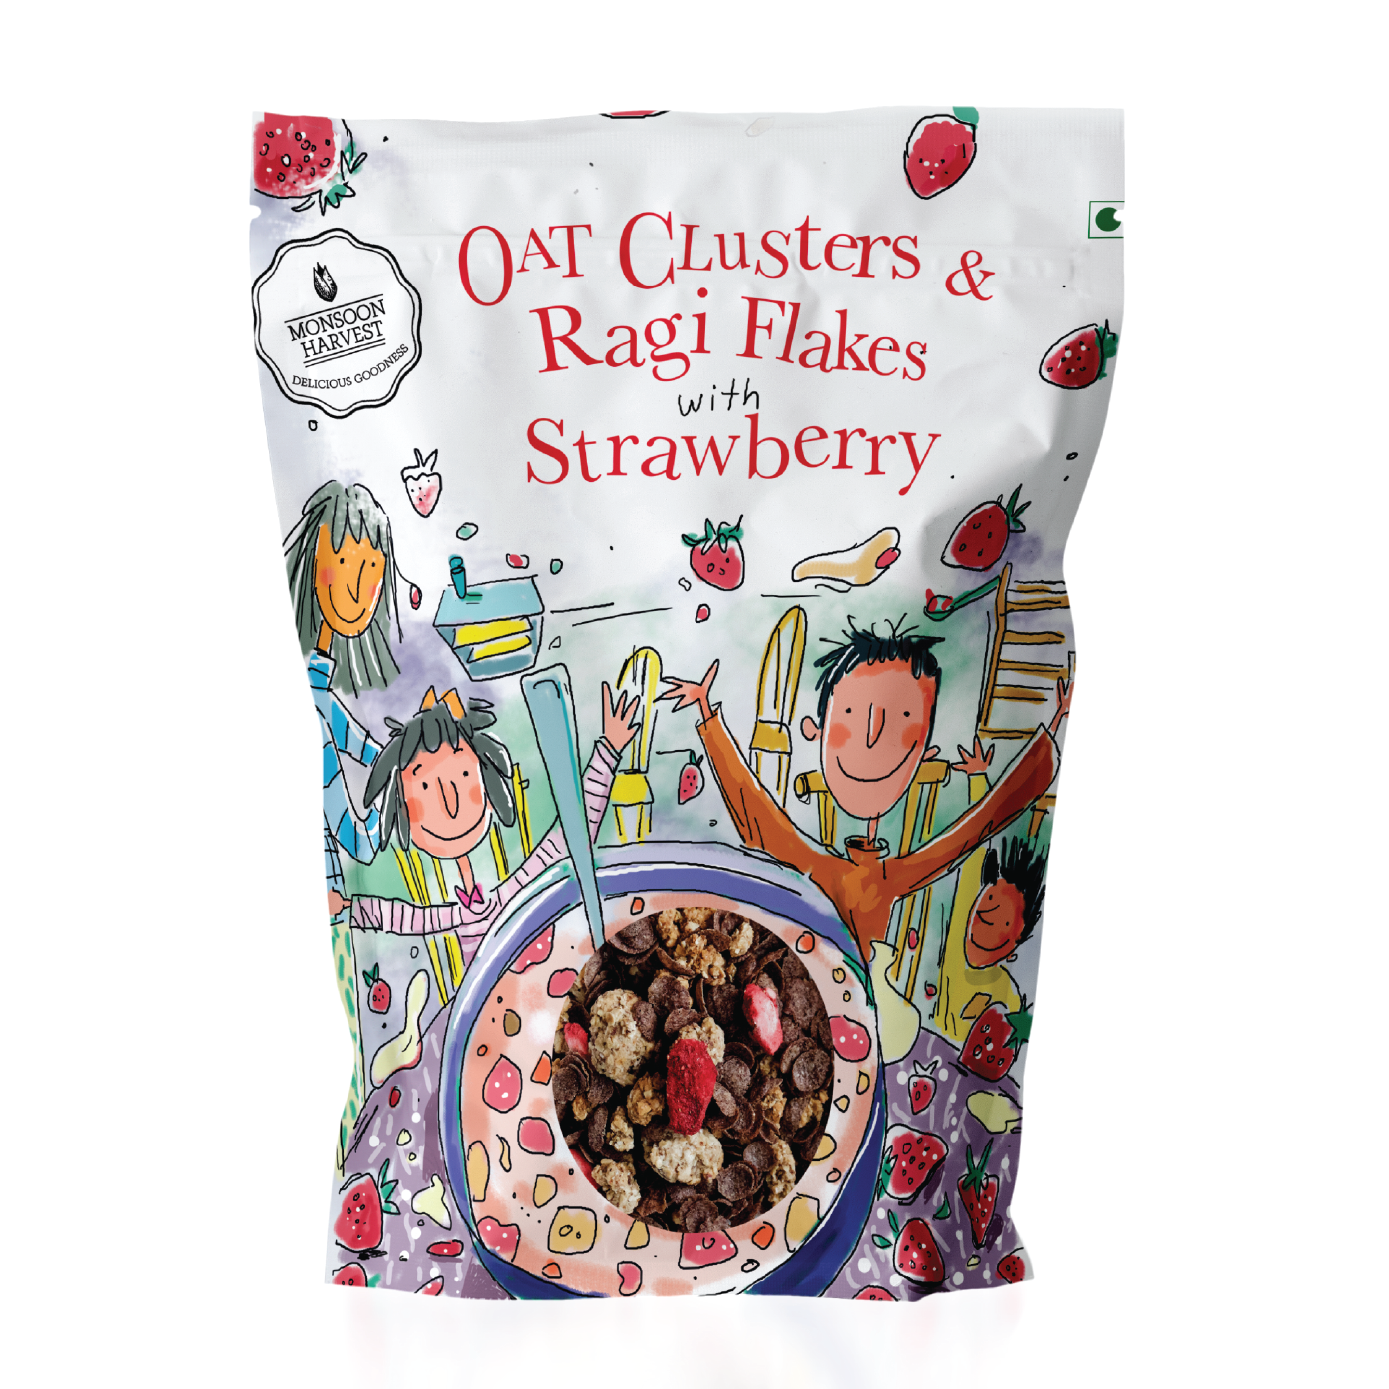 Breakfast Cereal - Oat Clusters & Ragi Flakes with Strawberry - 1KG